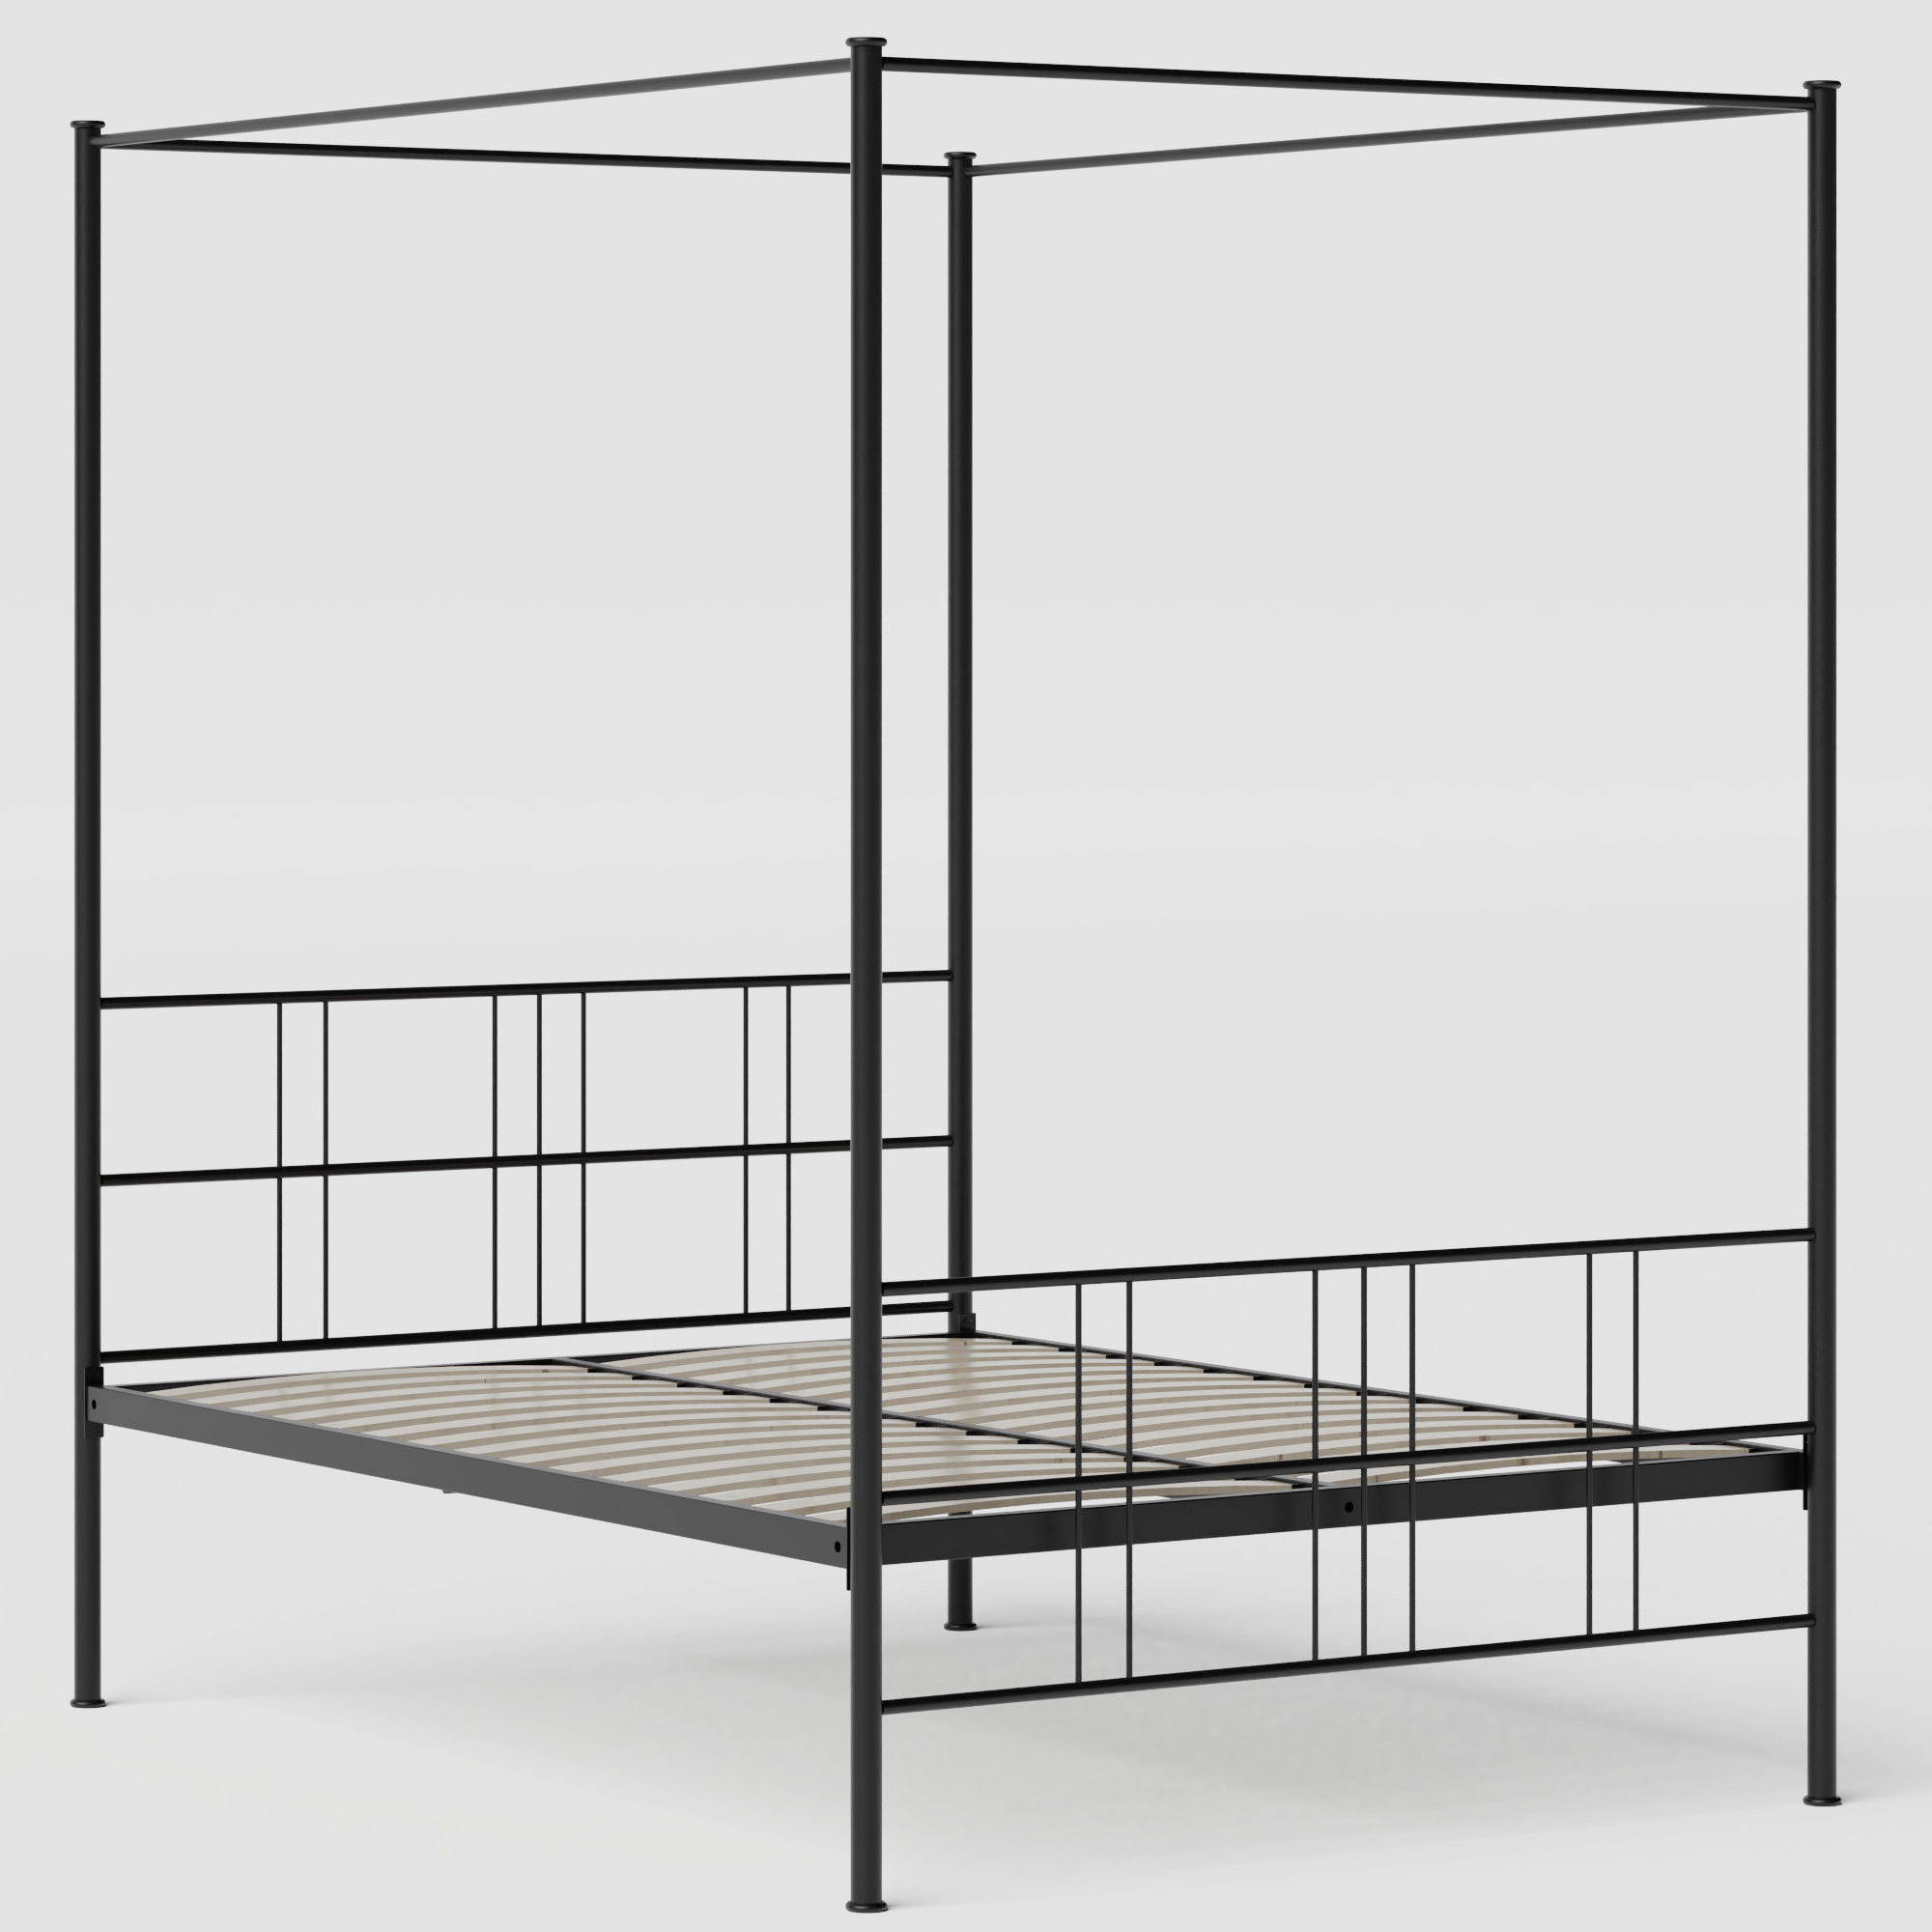 Toulon ijzeren bed in zwart